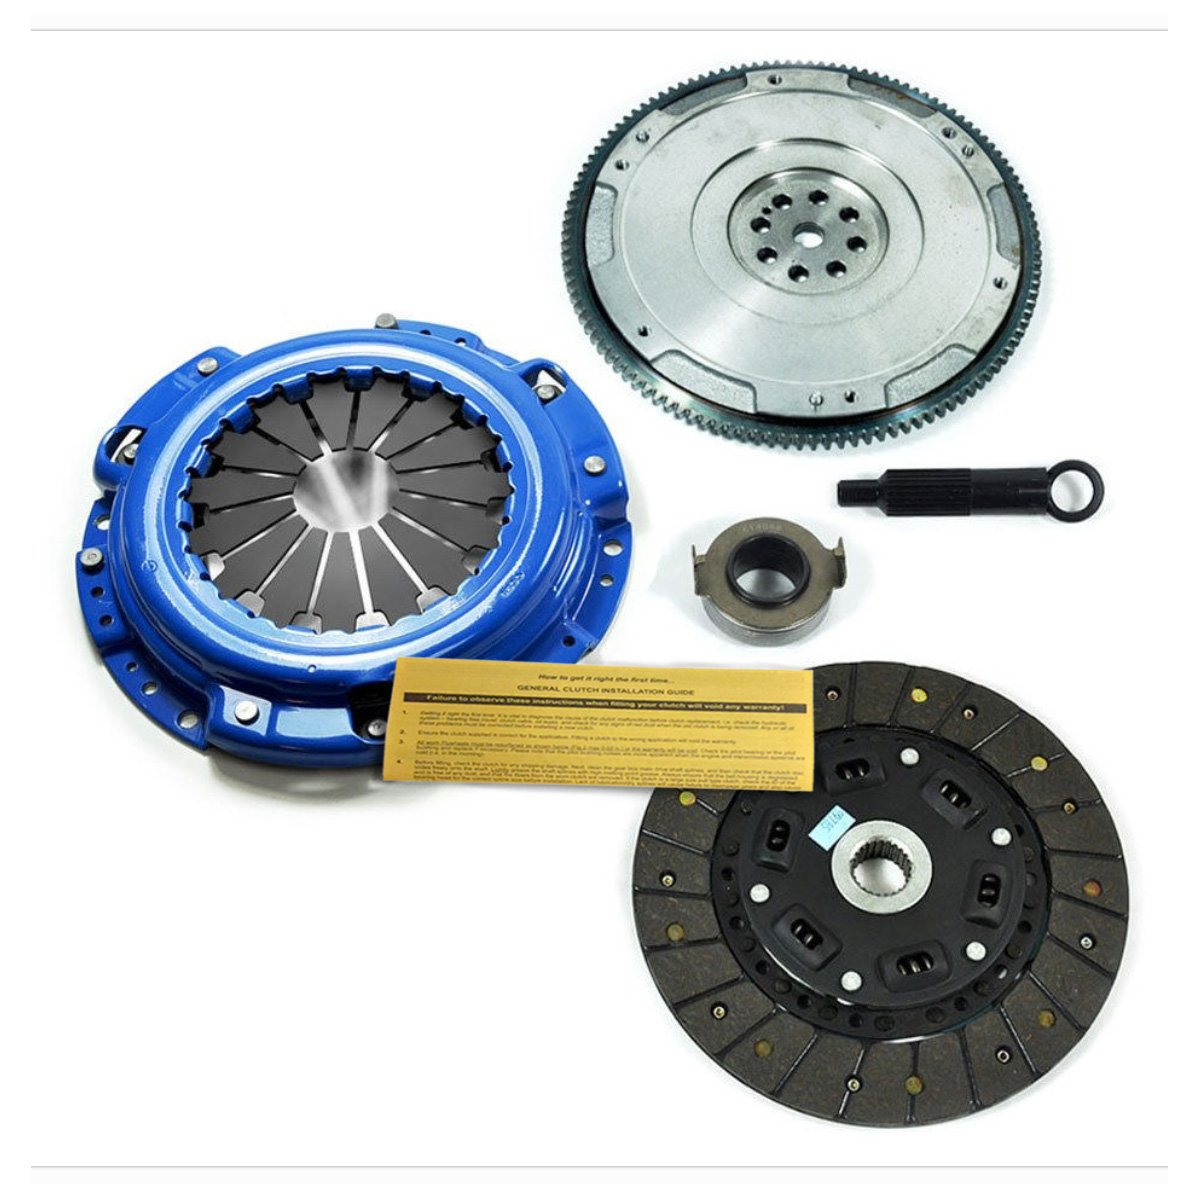 EFT STAGE 1 SPORT CLUTCH KIT & CAST FLYWHEEL FOR HONDA ACCORD PRELUDE 2.2L 2.3L